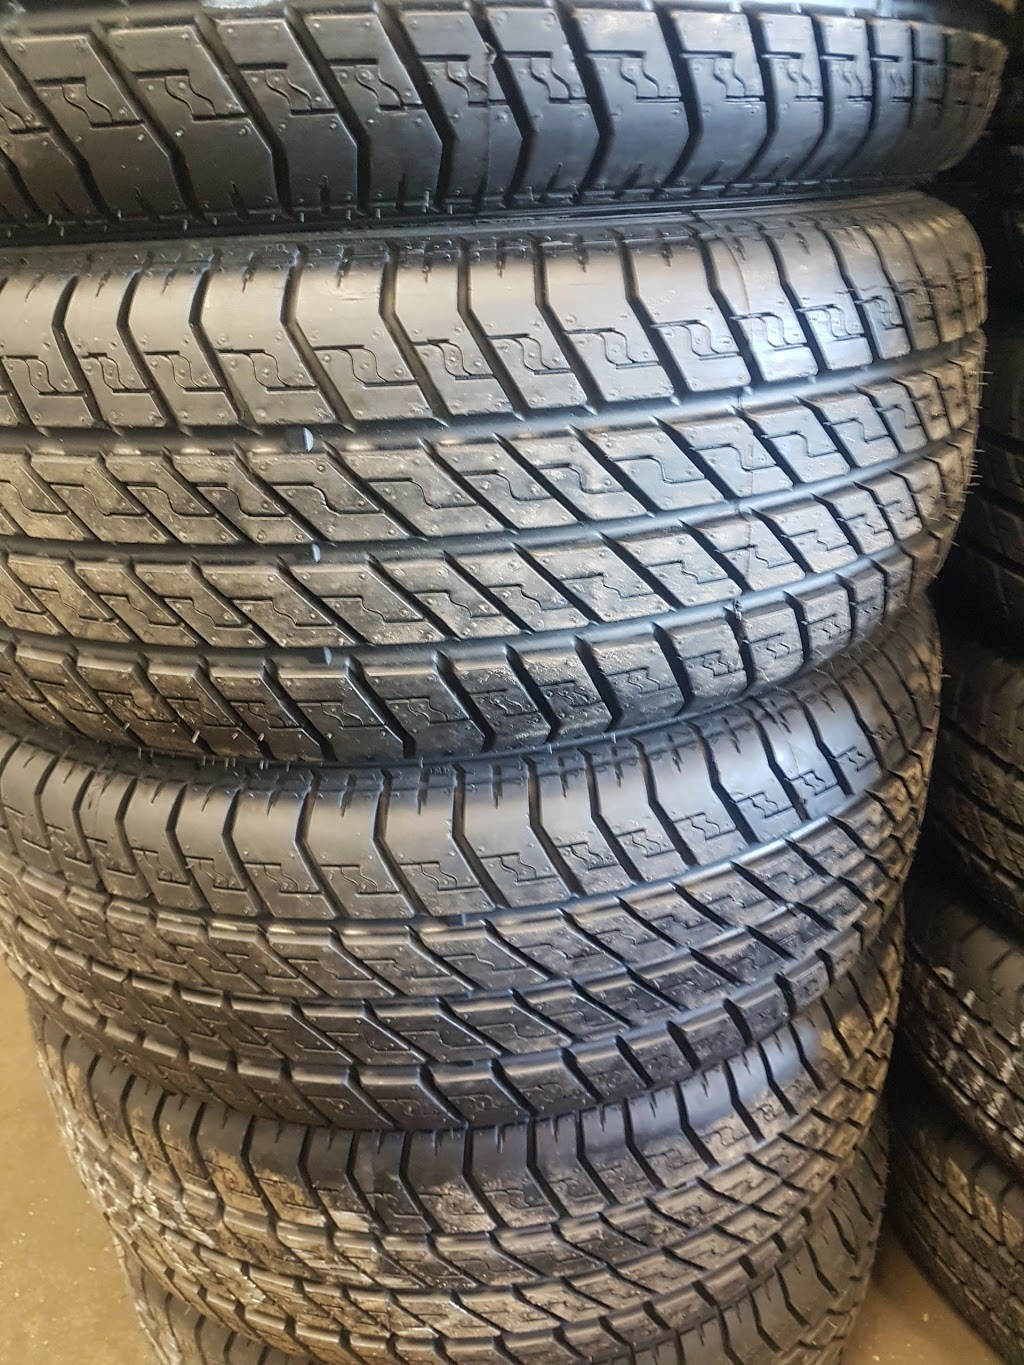 Quality Used Tires Edmonton   car repair   13208 Fort Rd NW, Edmonton, AB T5A 1C2, Canada   7807821137 OR +1 780-782-1137